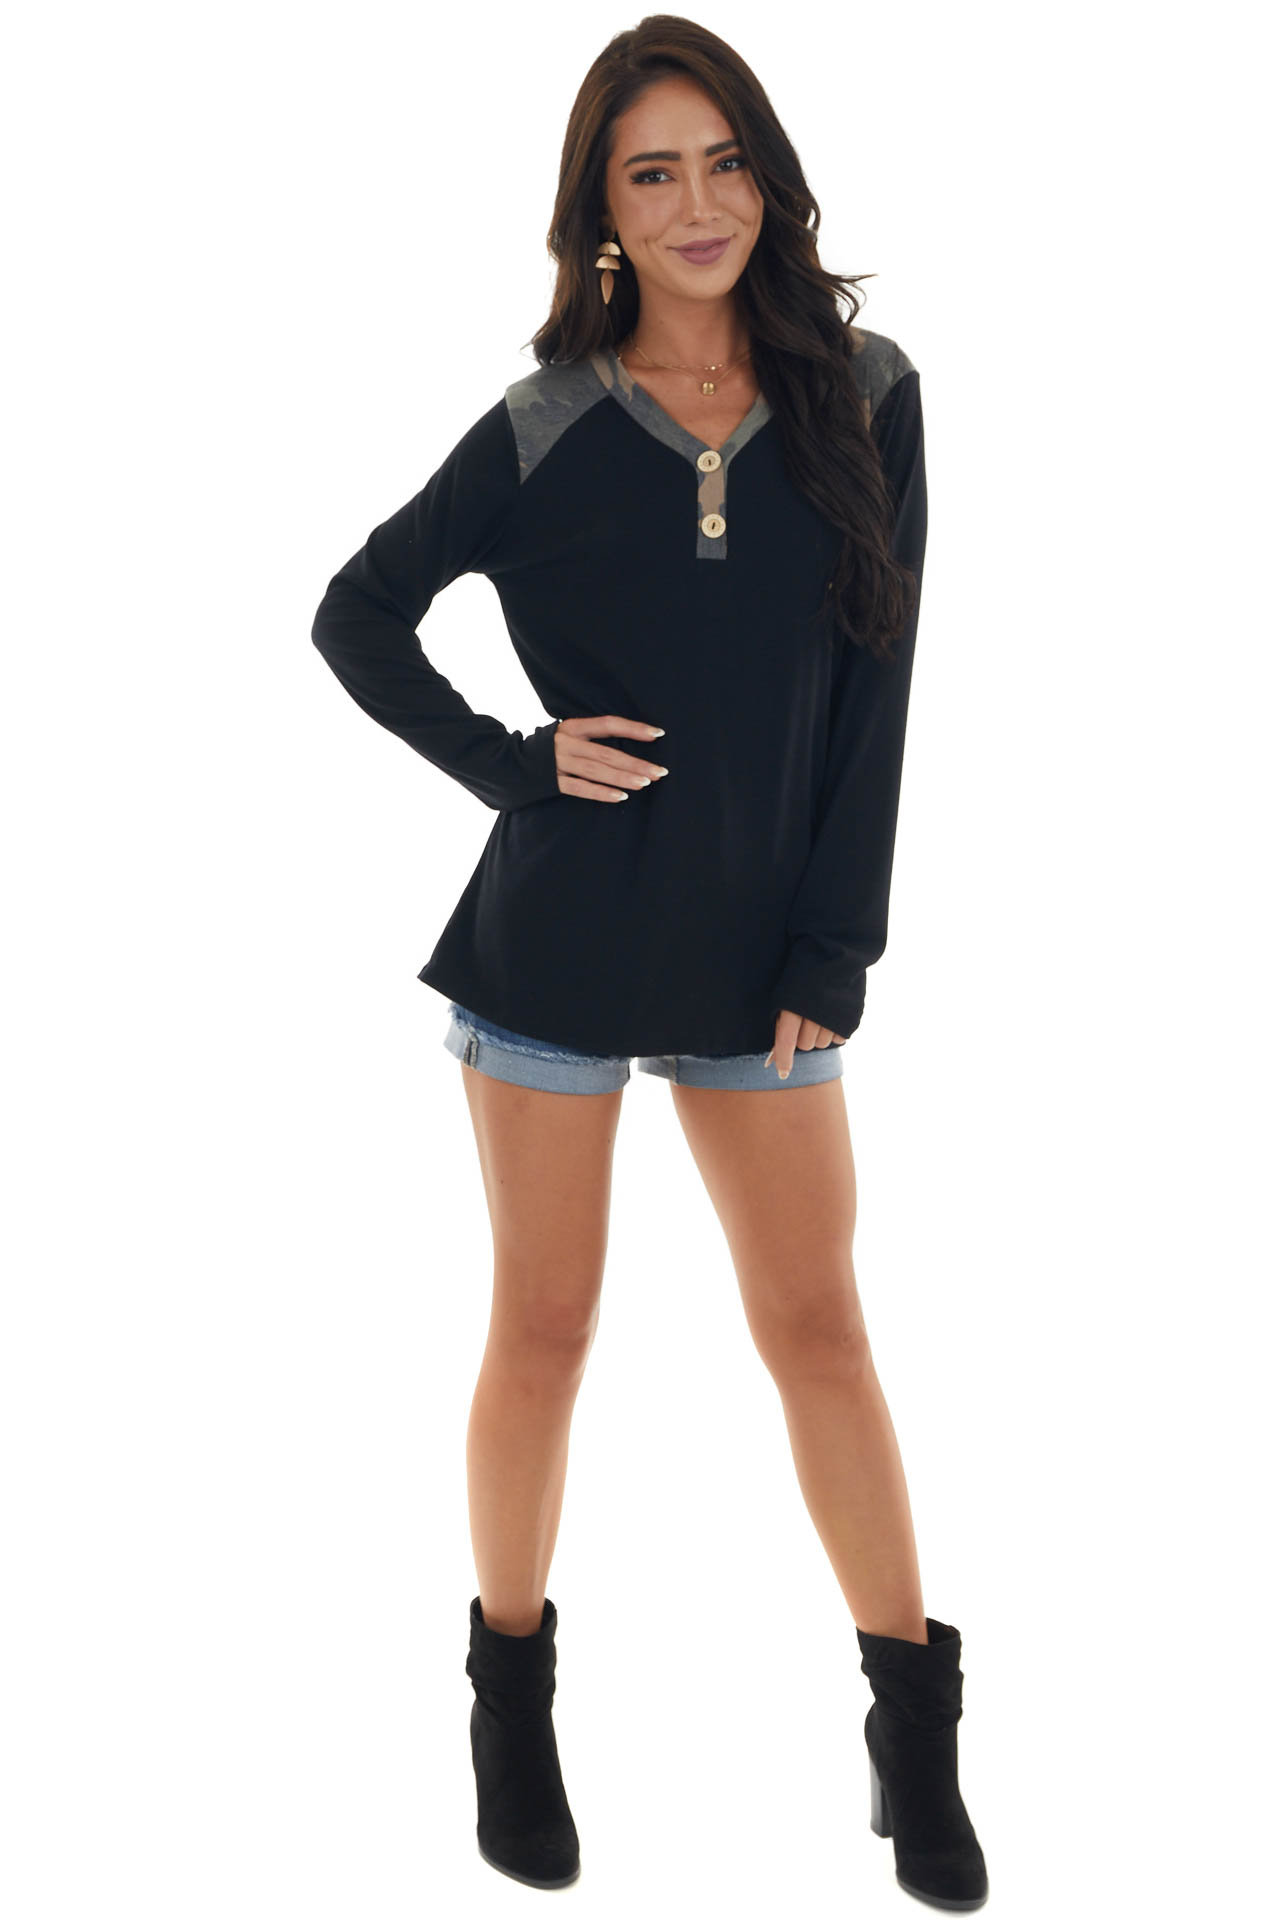 Black Long Sleeve Knit Top with Camo Contrast